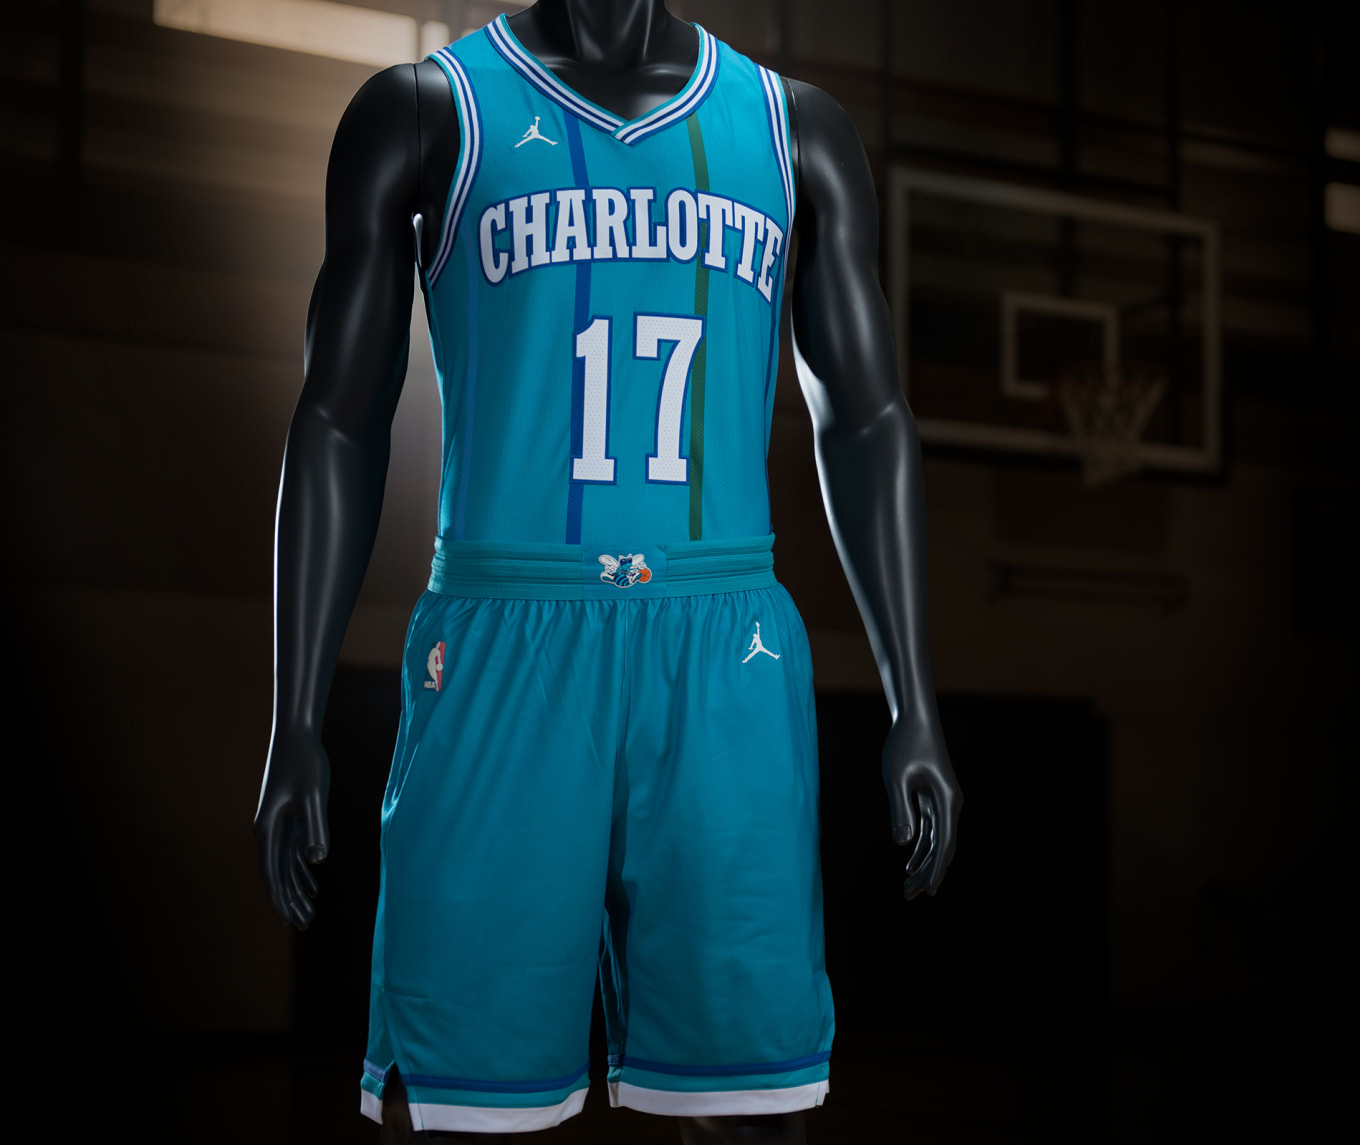 336ef08ccb21 Nike Charlotte Hornets Classic Throwback Jersey